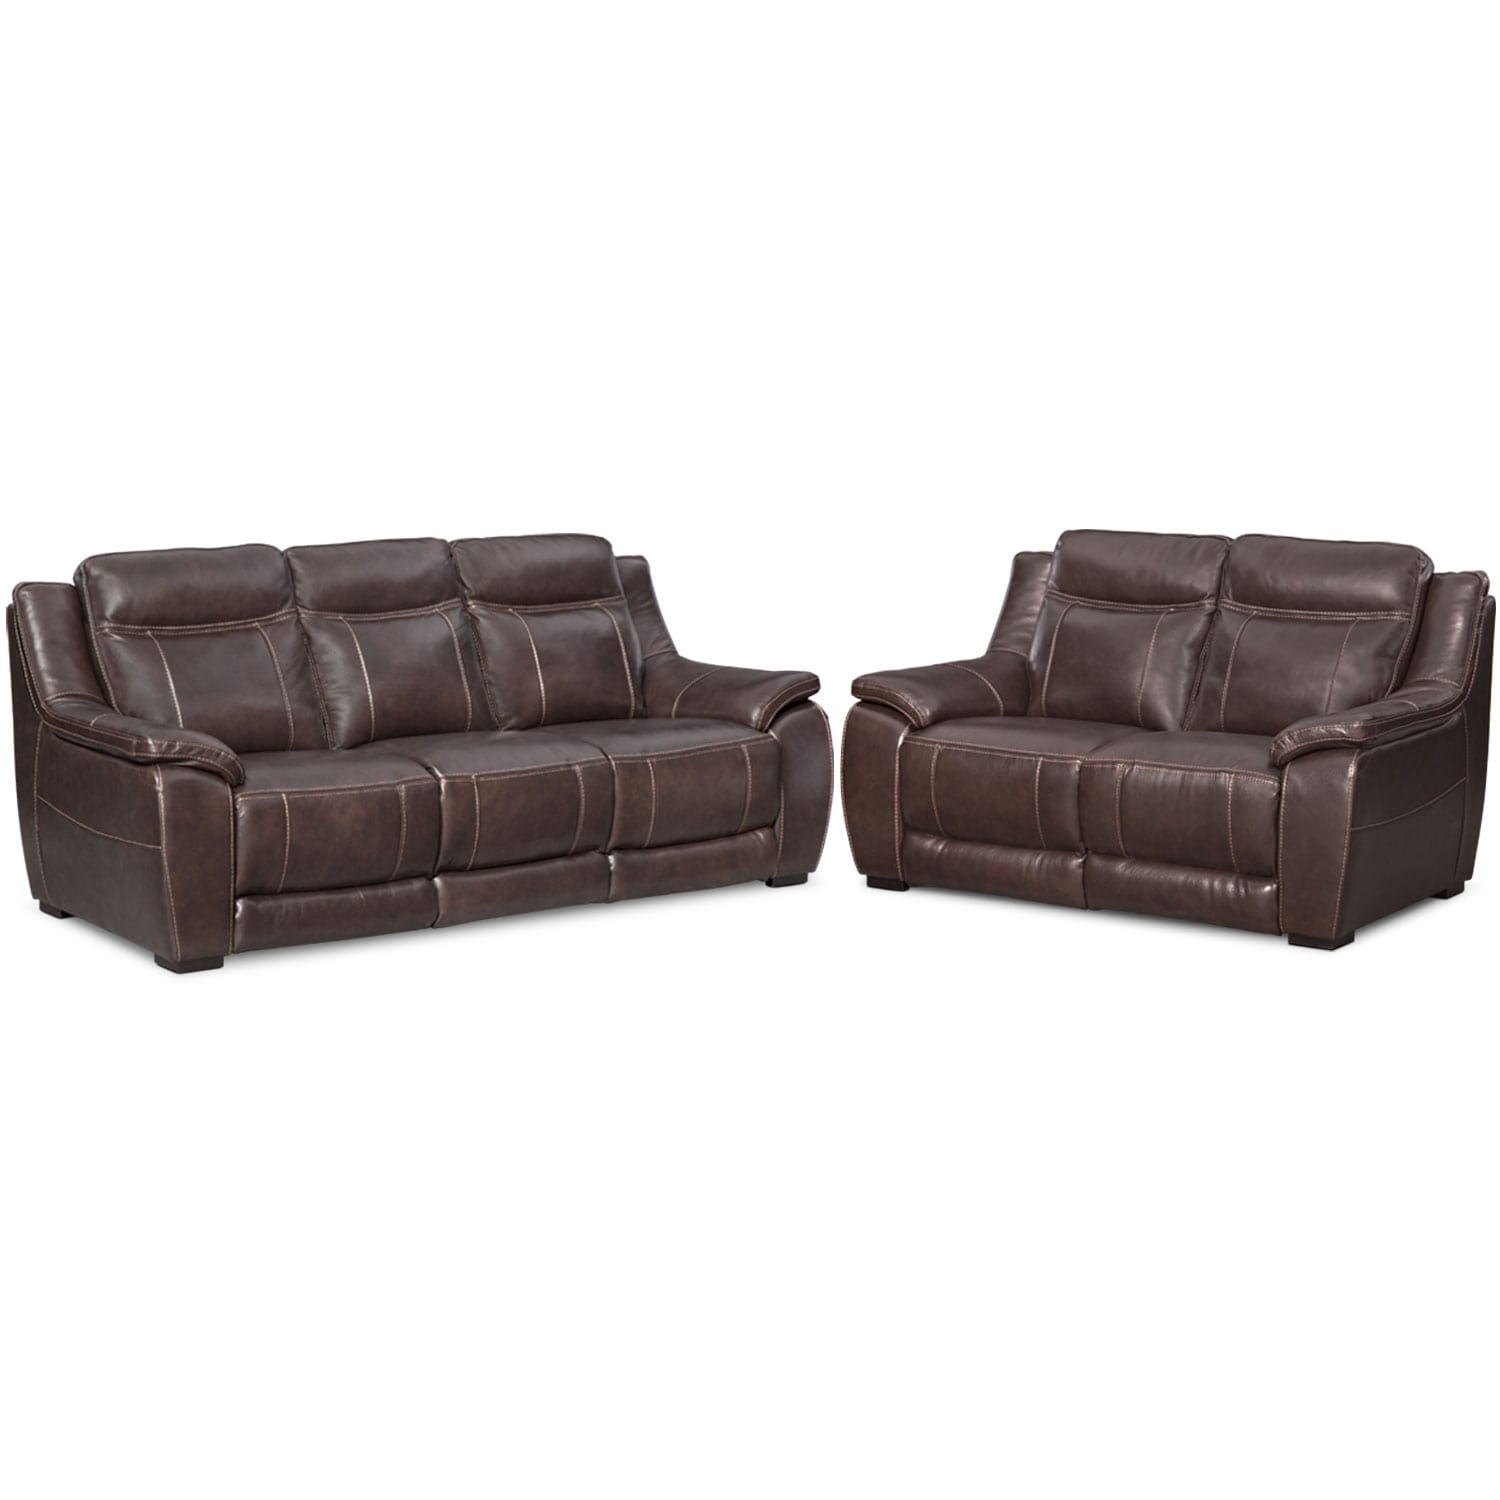 Lido Sofa and Loveseat Set - Brown